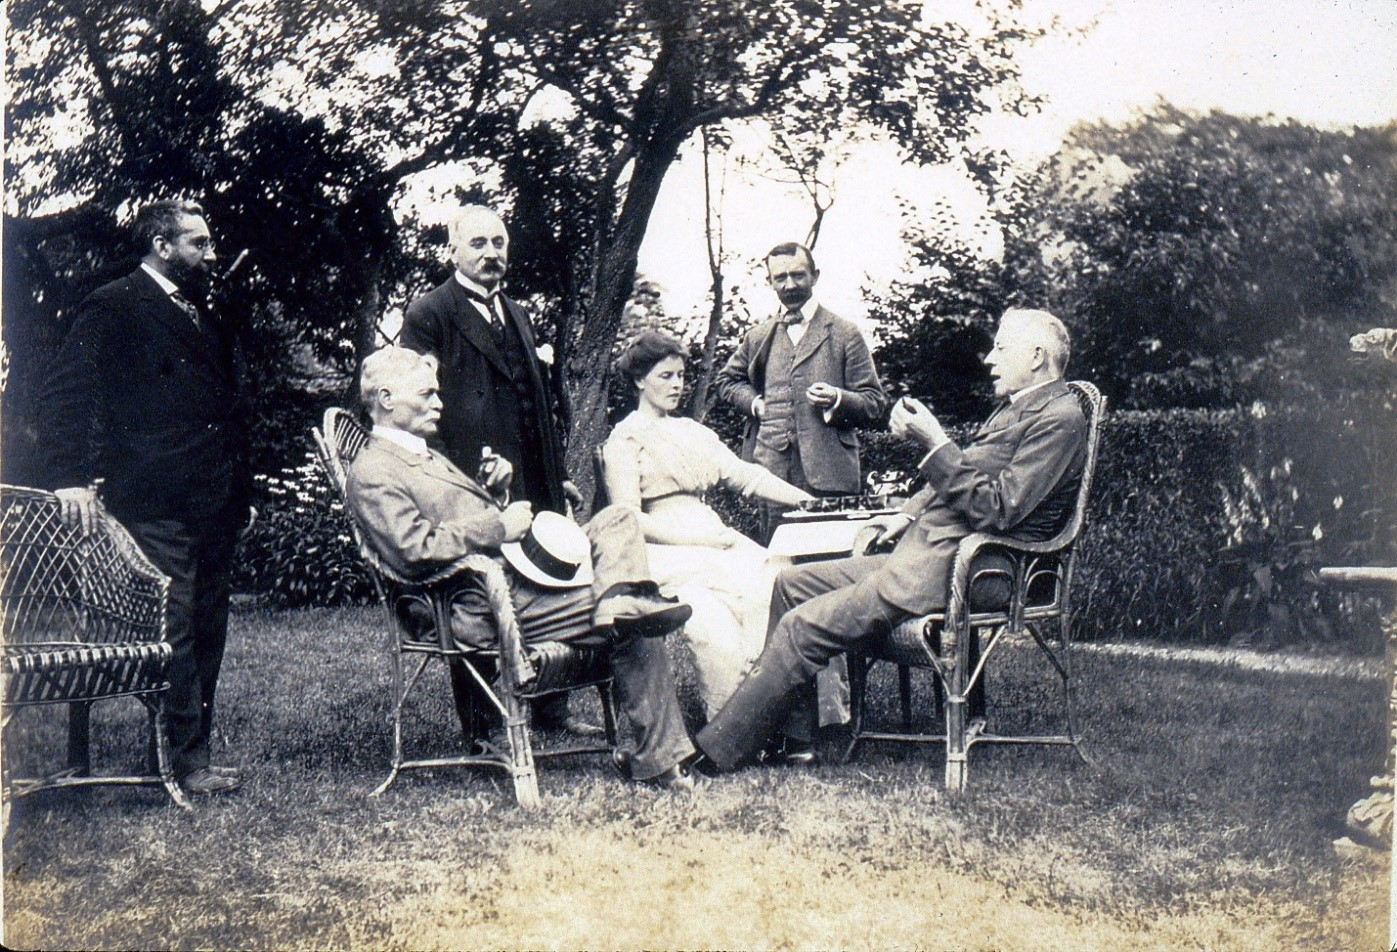 Charles, Catalan artist Ramon Casas, and several friends socializing outdoors ca. 1910s